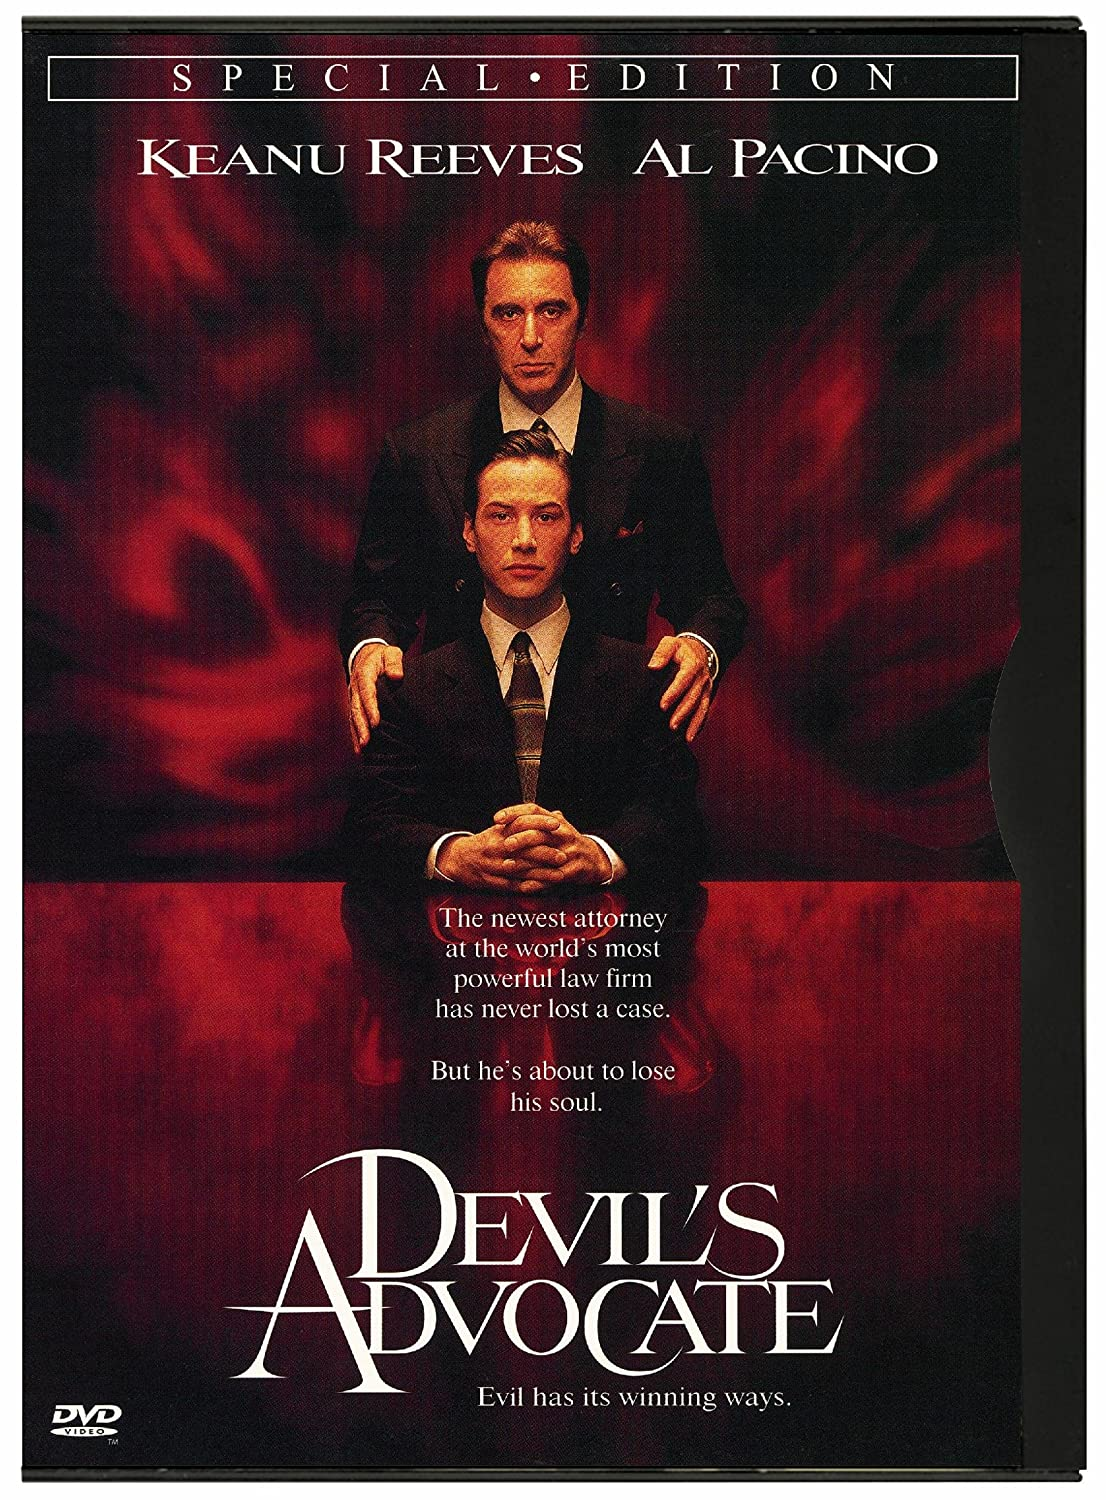 What is a devils advocate